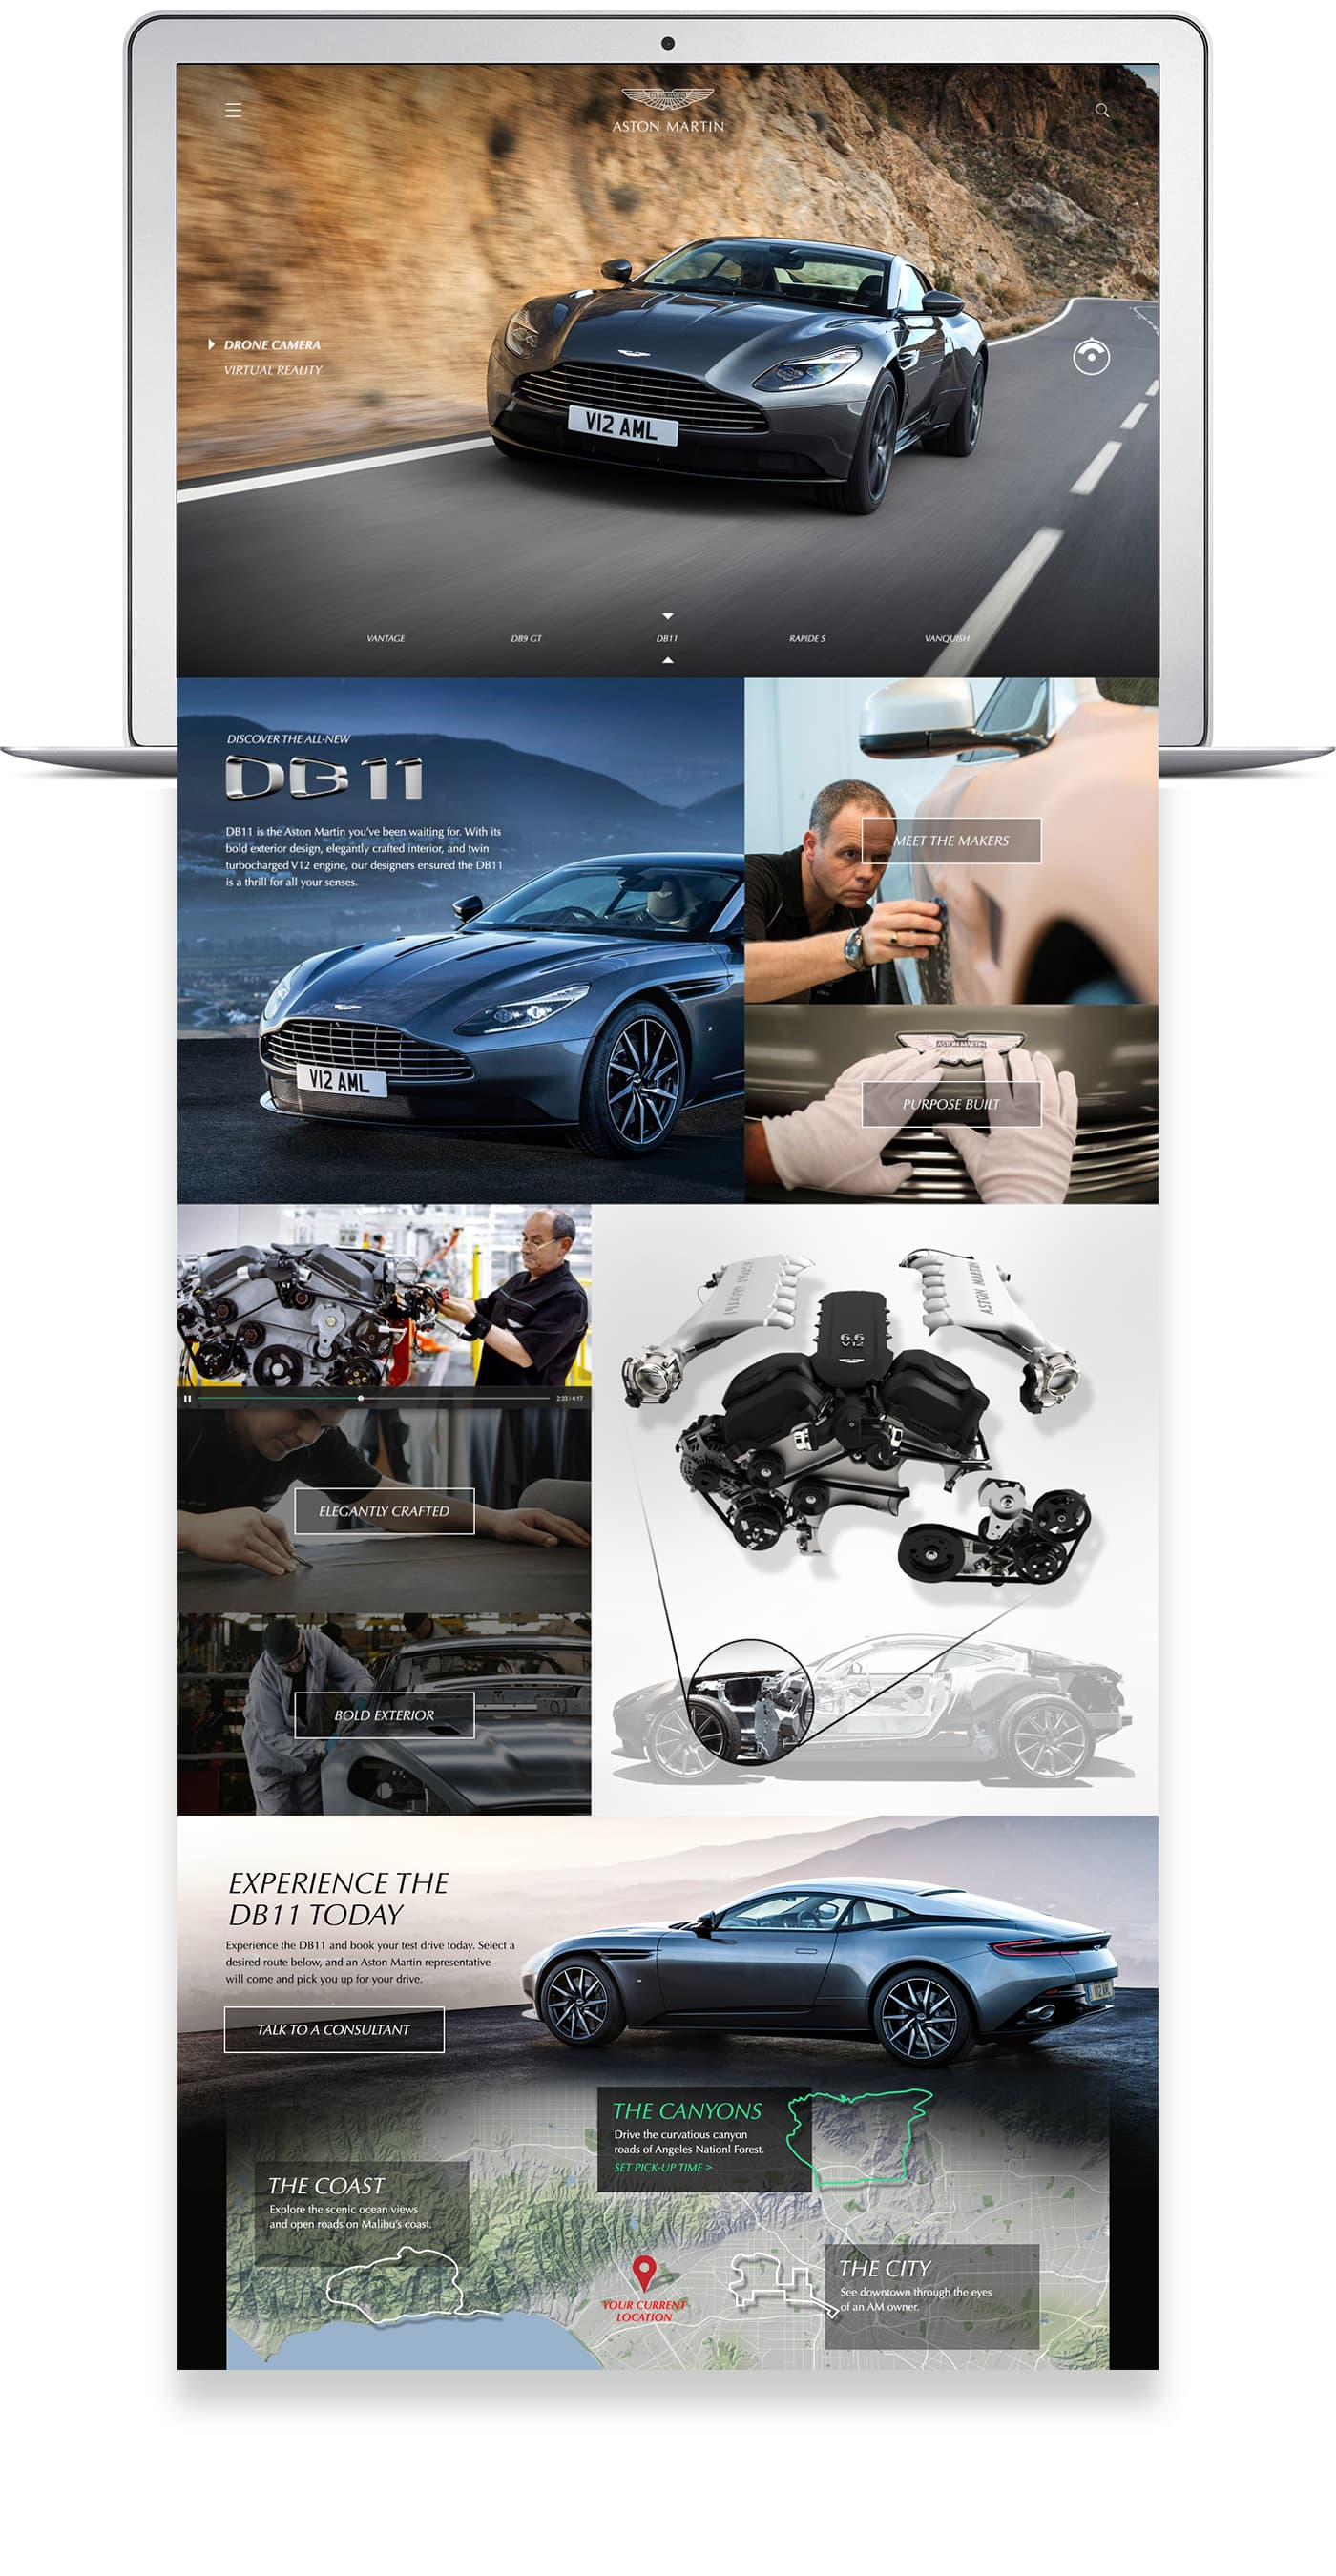 Aston Martin Digital: Website Design and Brand Strategy